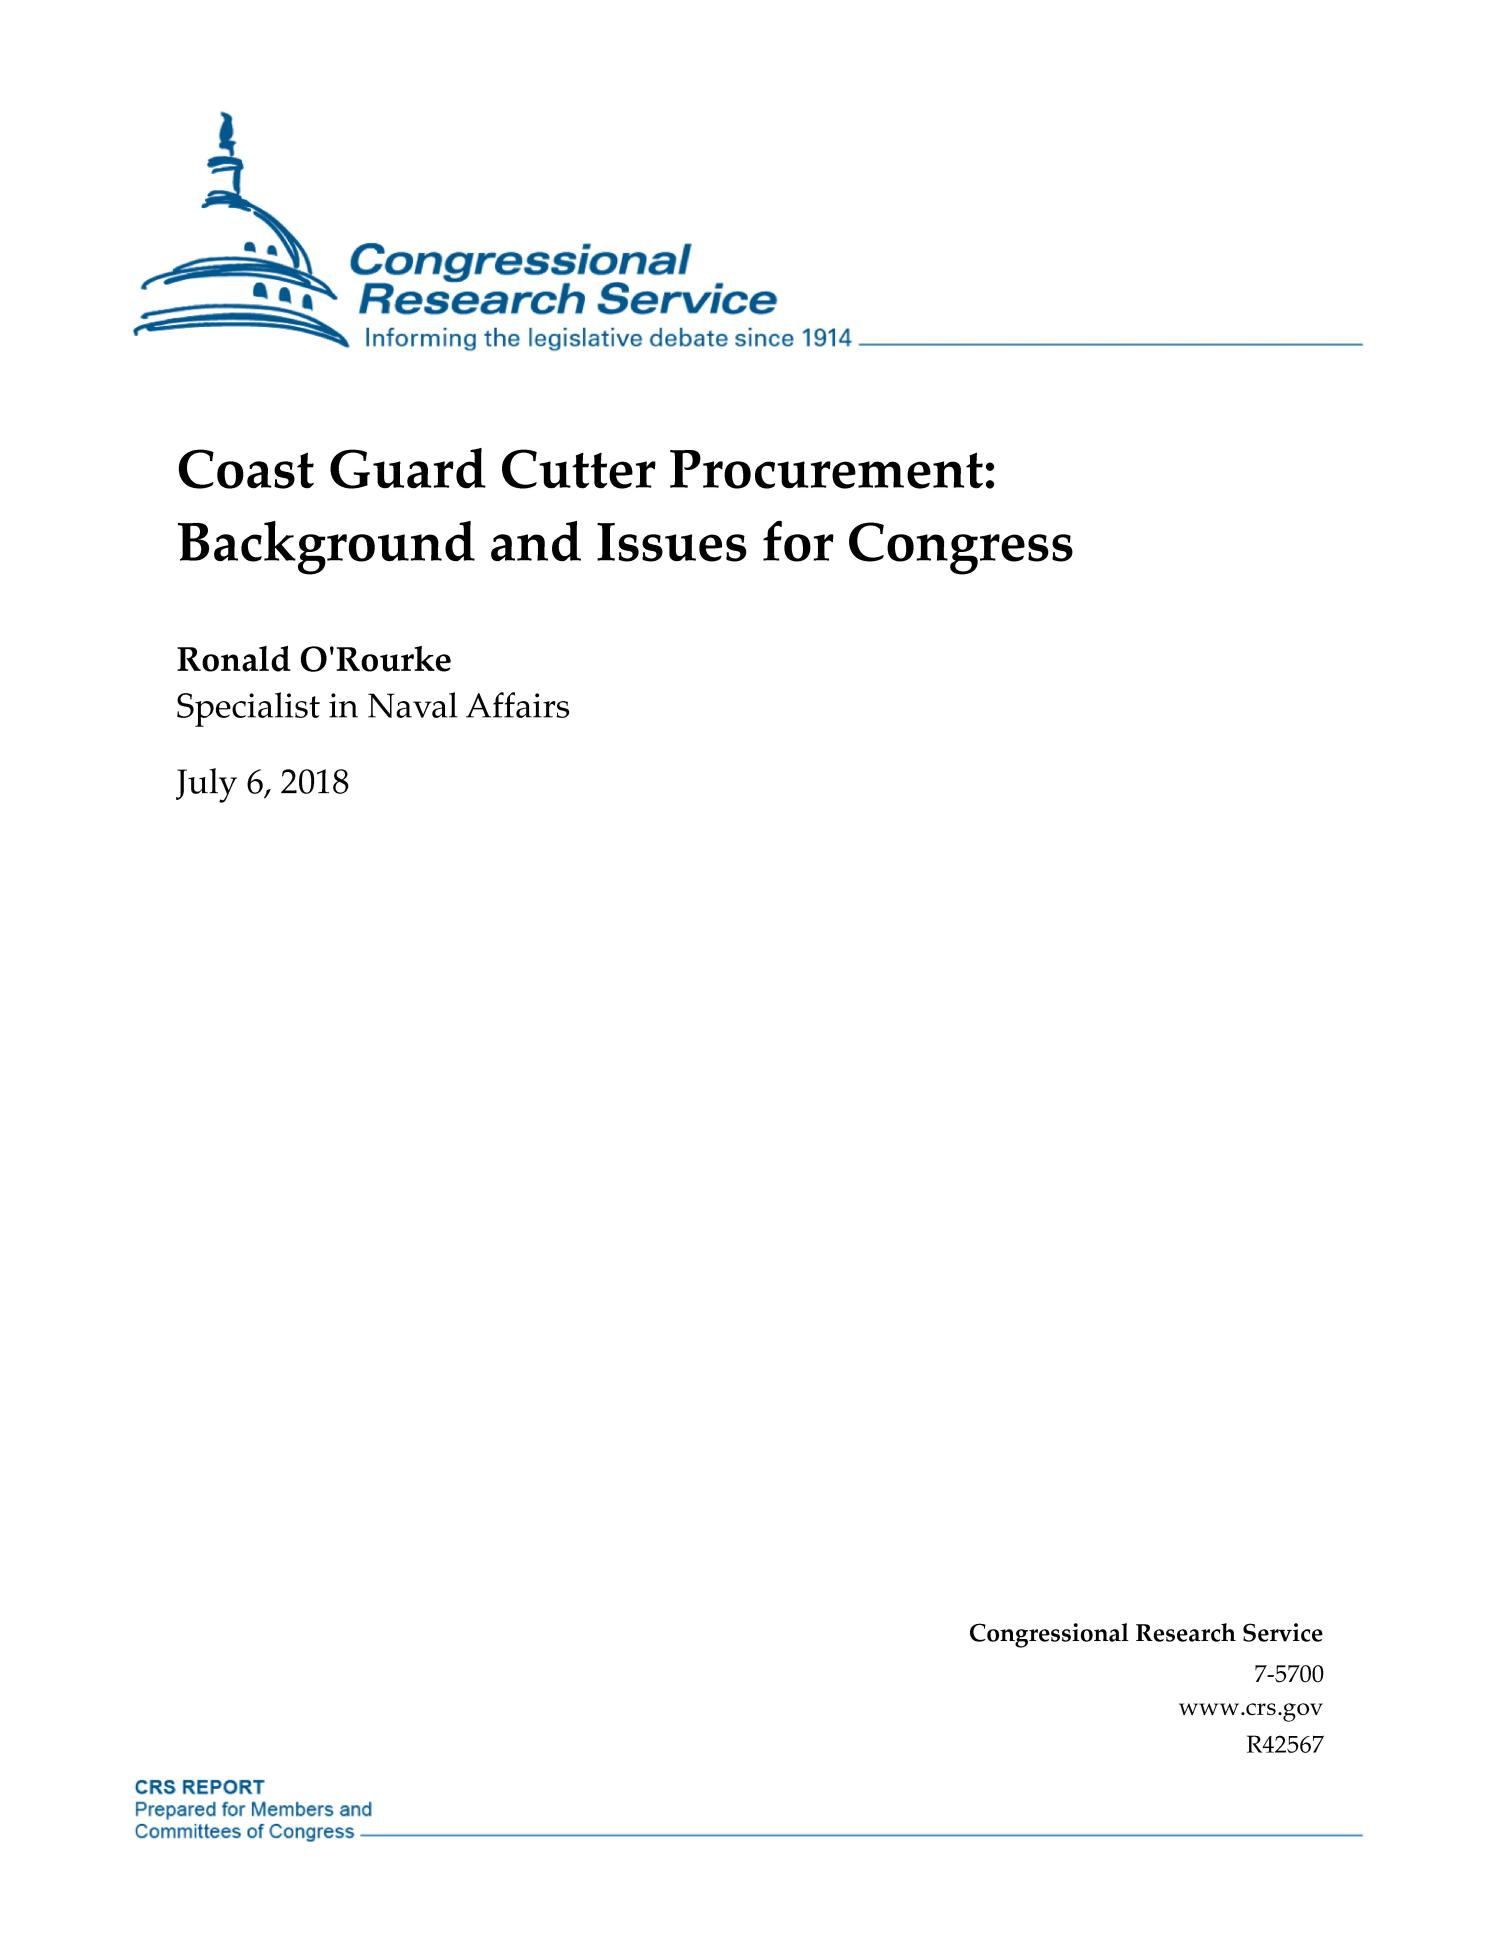 Coast Guard Cutter Procurement: Background and Issues for Congress                                                                                                      [Sequence #]: 1 of 48